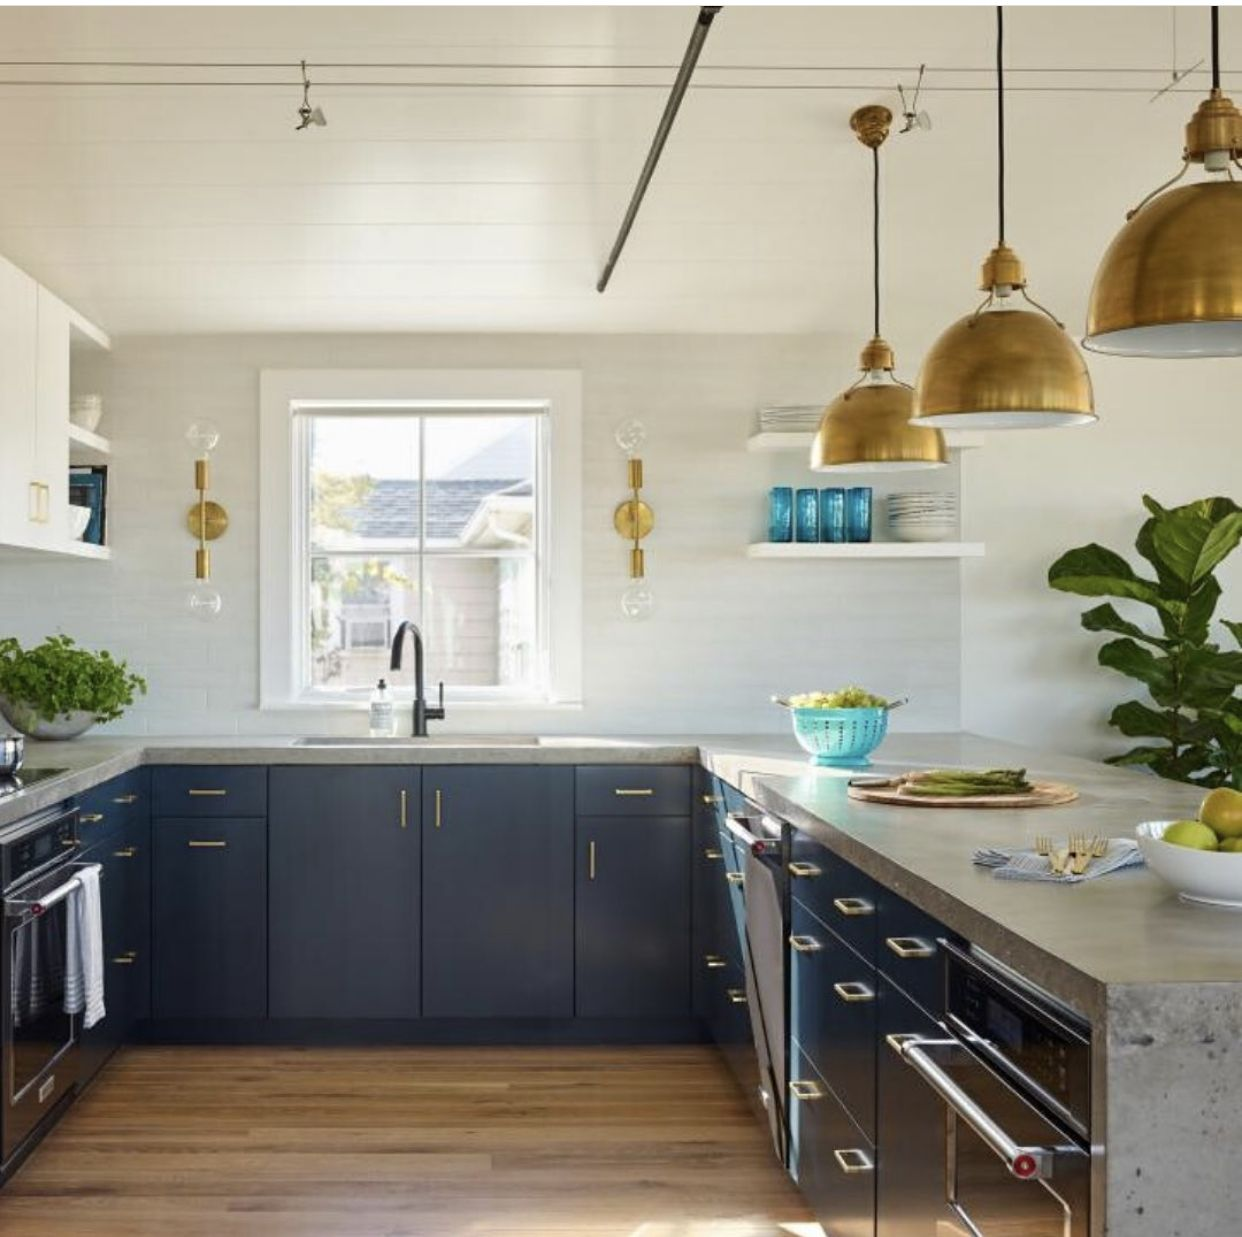 Pin by Patricia Williams on Tulsa House in 2020 (With